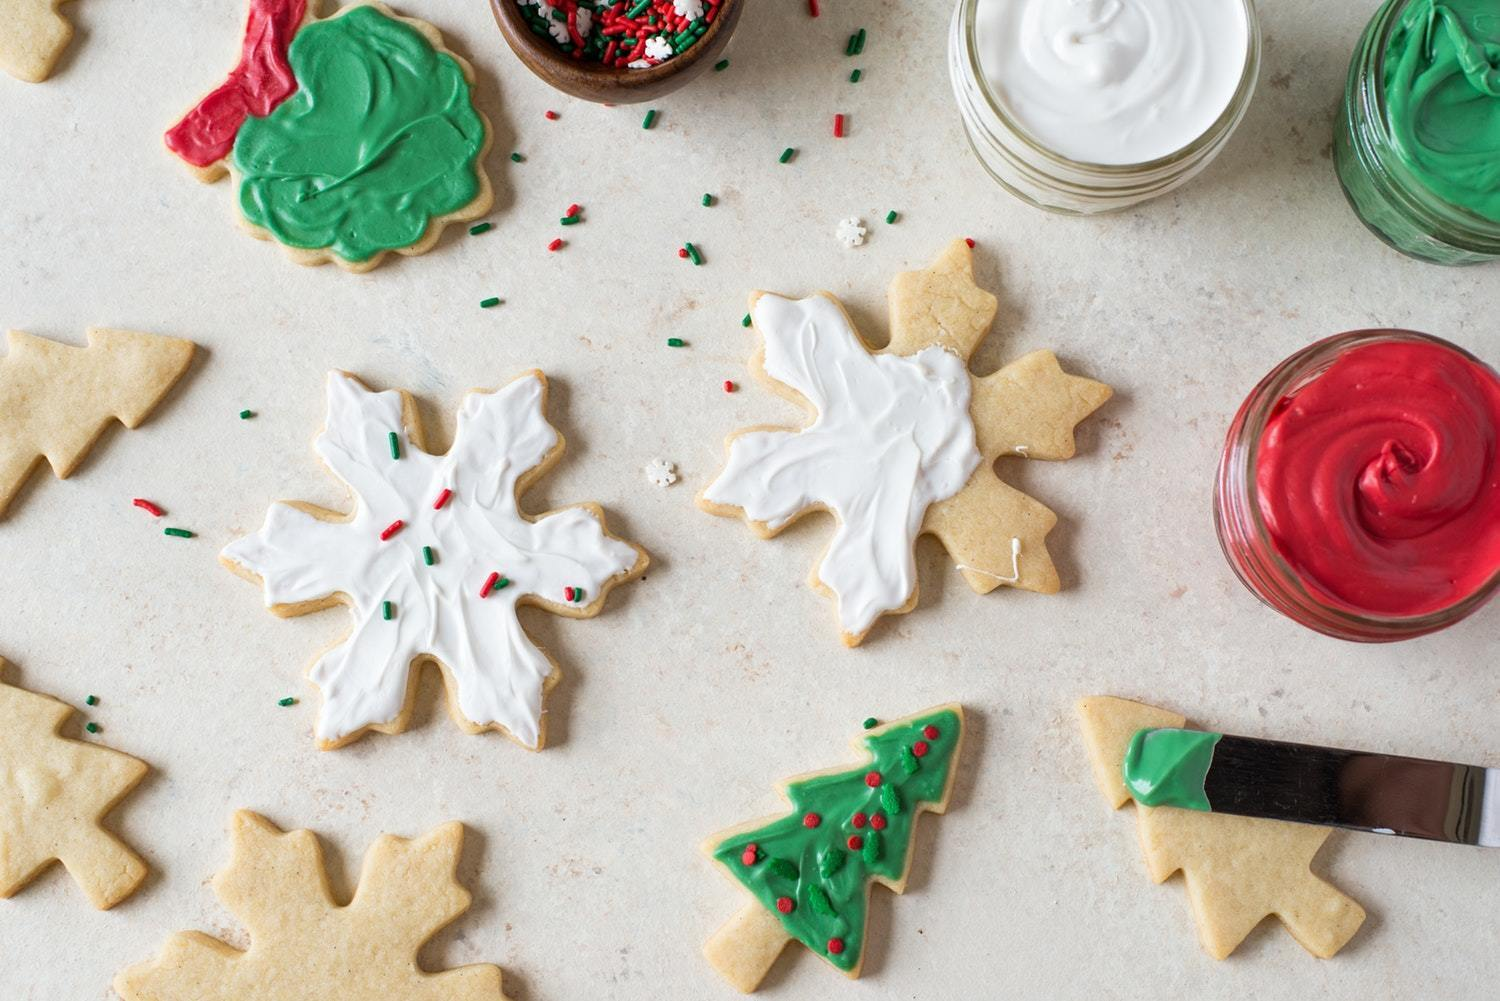 The Best Icing for Decorating Cookies: Candy Melts